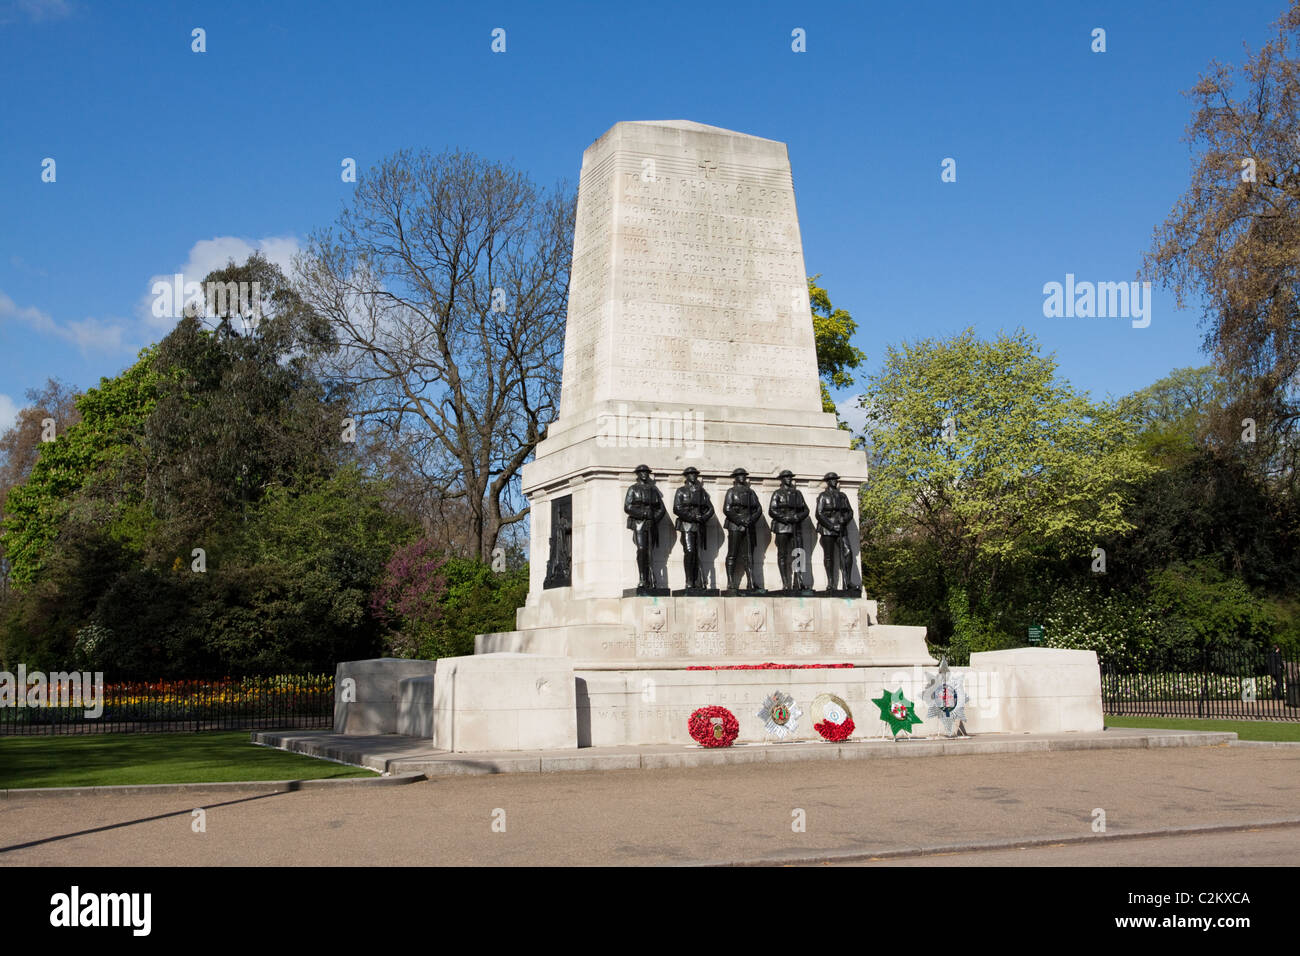 Guards Memorial, Horse Guards Parade,London, England, UK Photo Stock